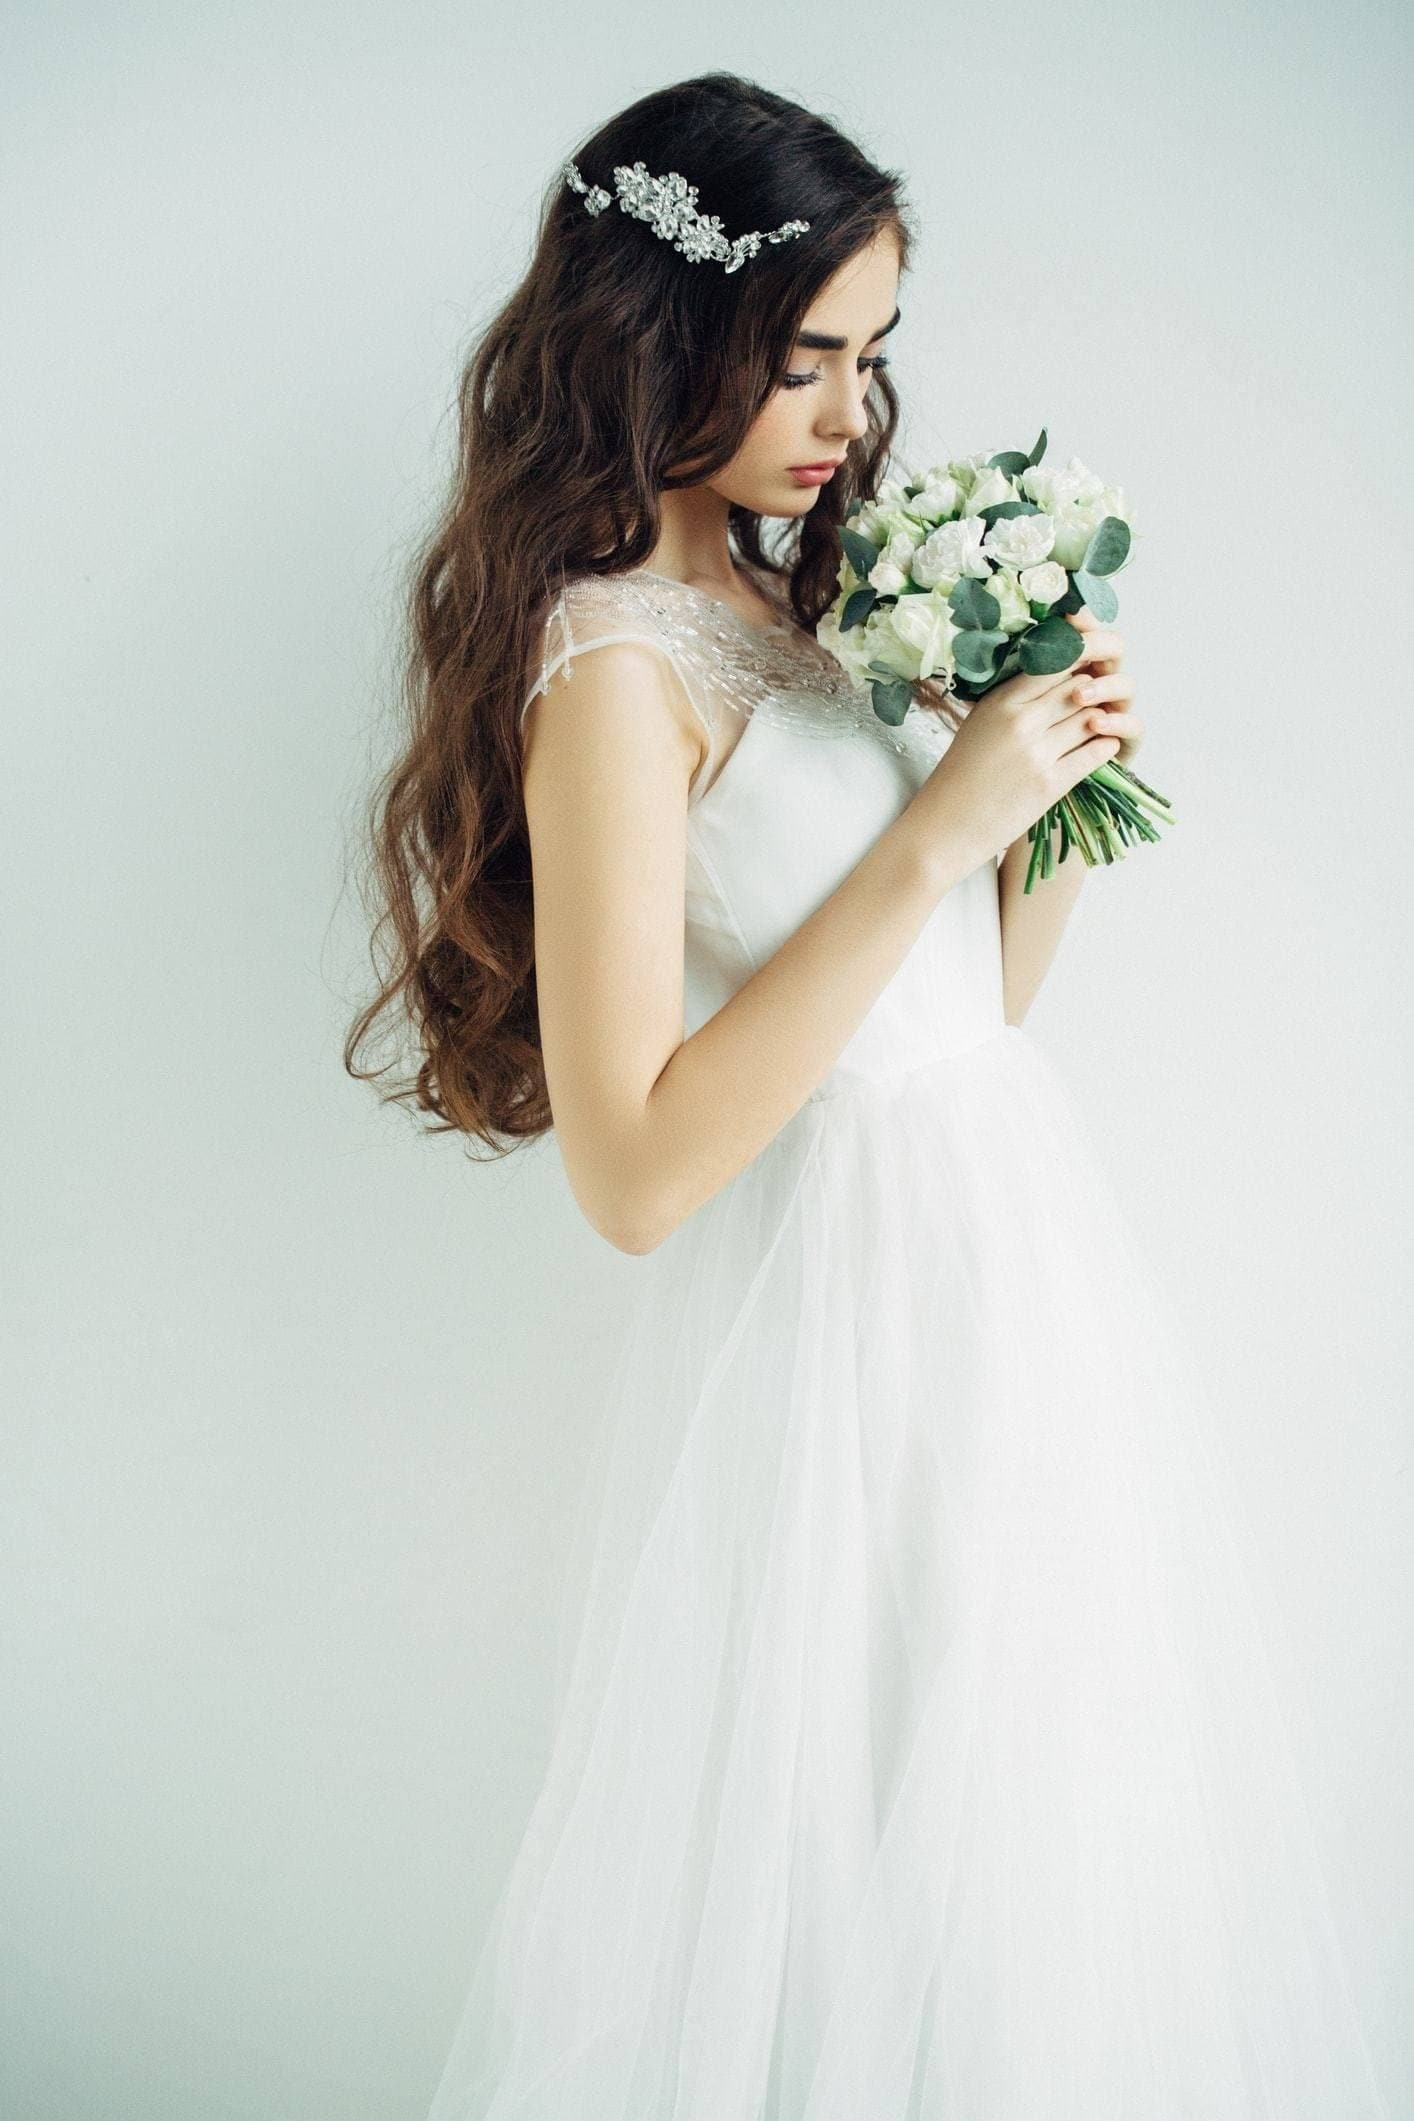 Curly wedding hair: Brunette bride with long curly hair with a diamante barette hair clip